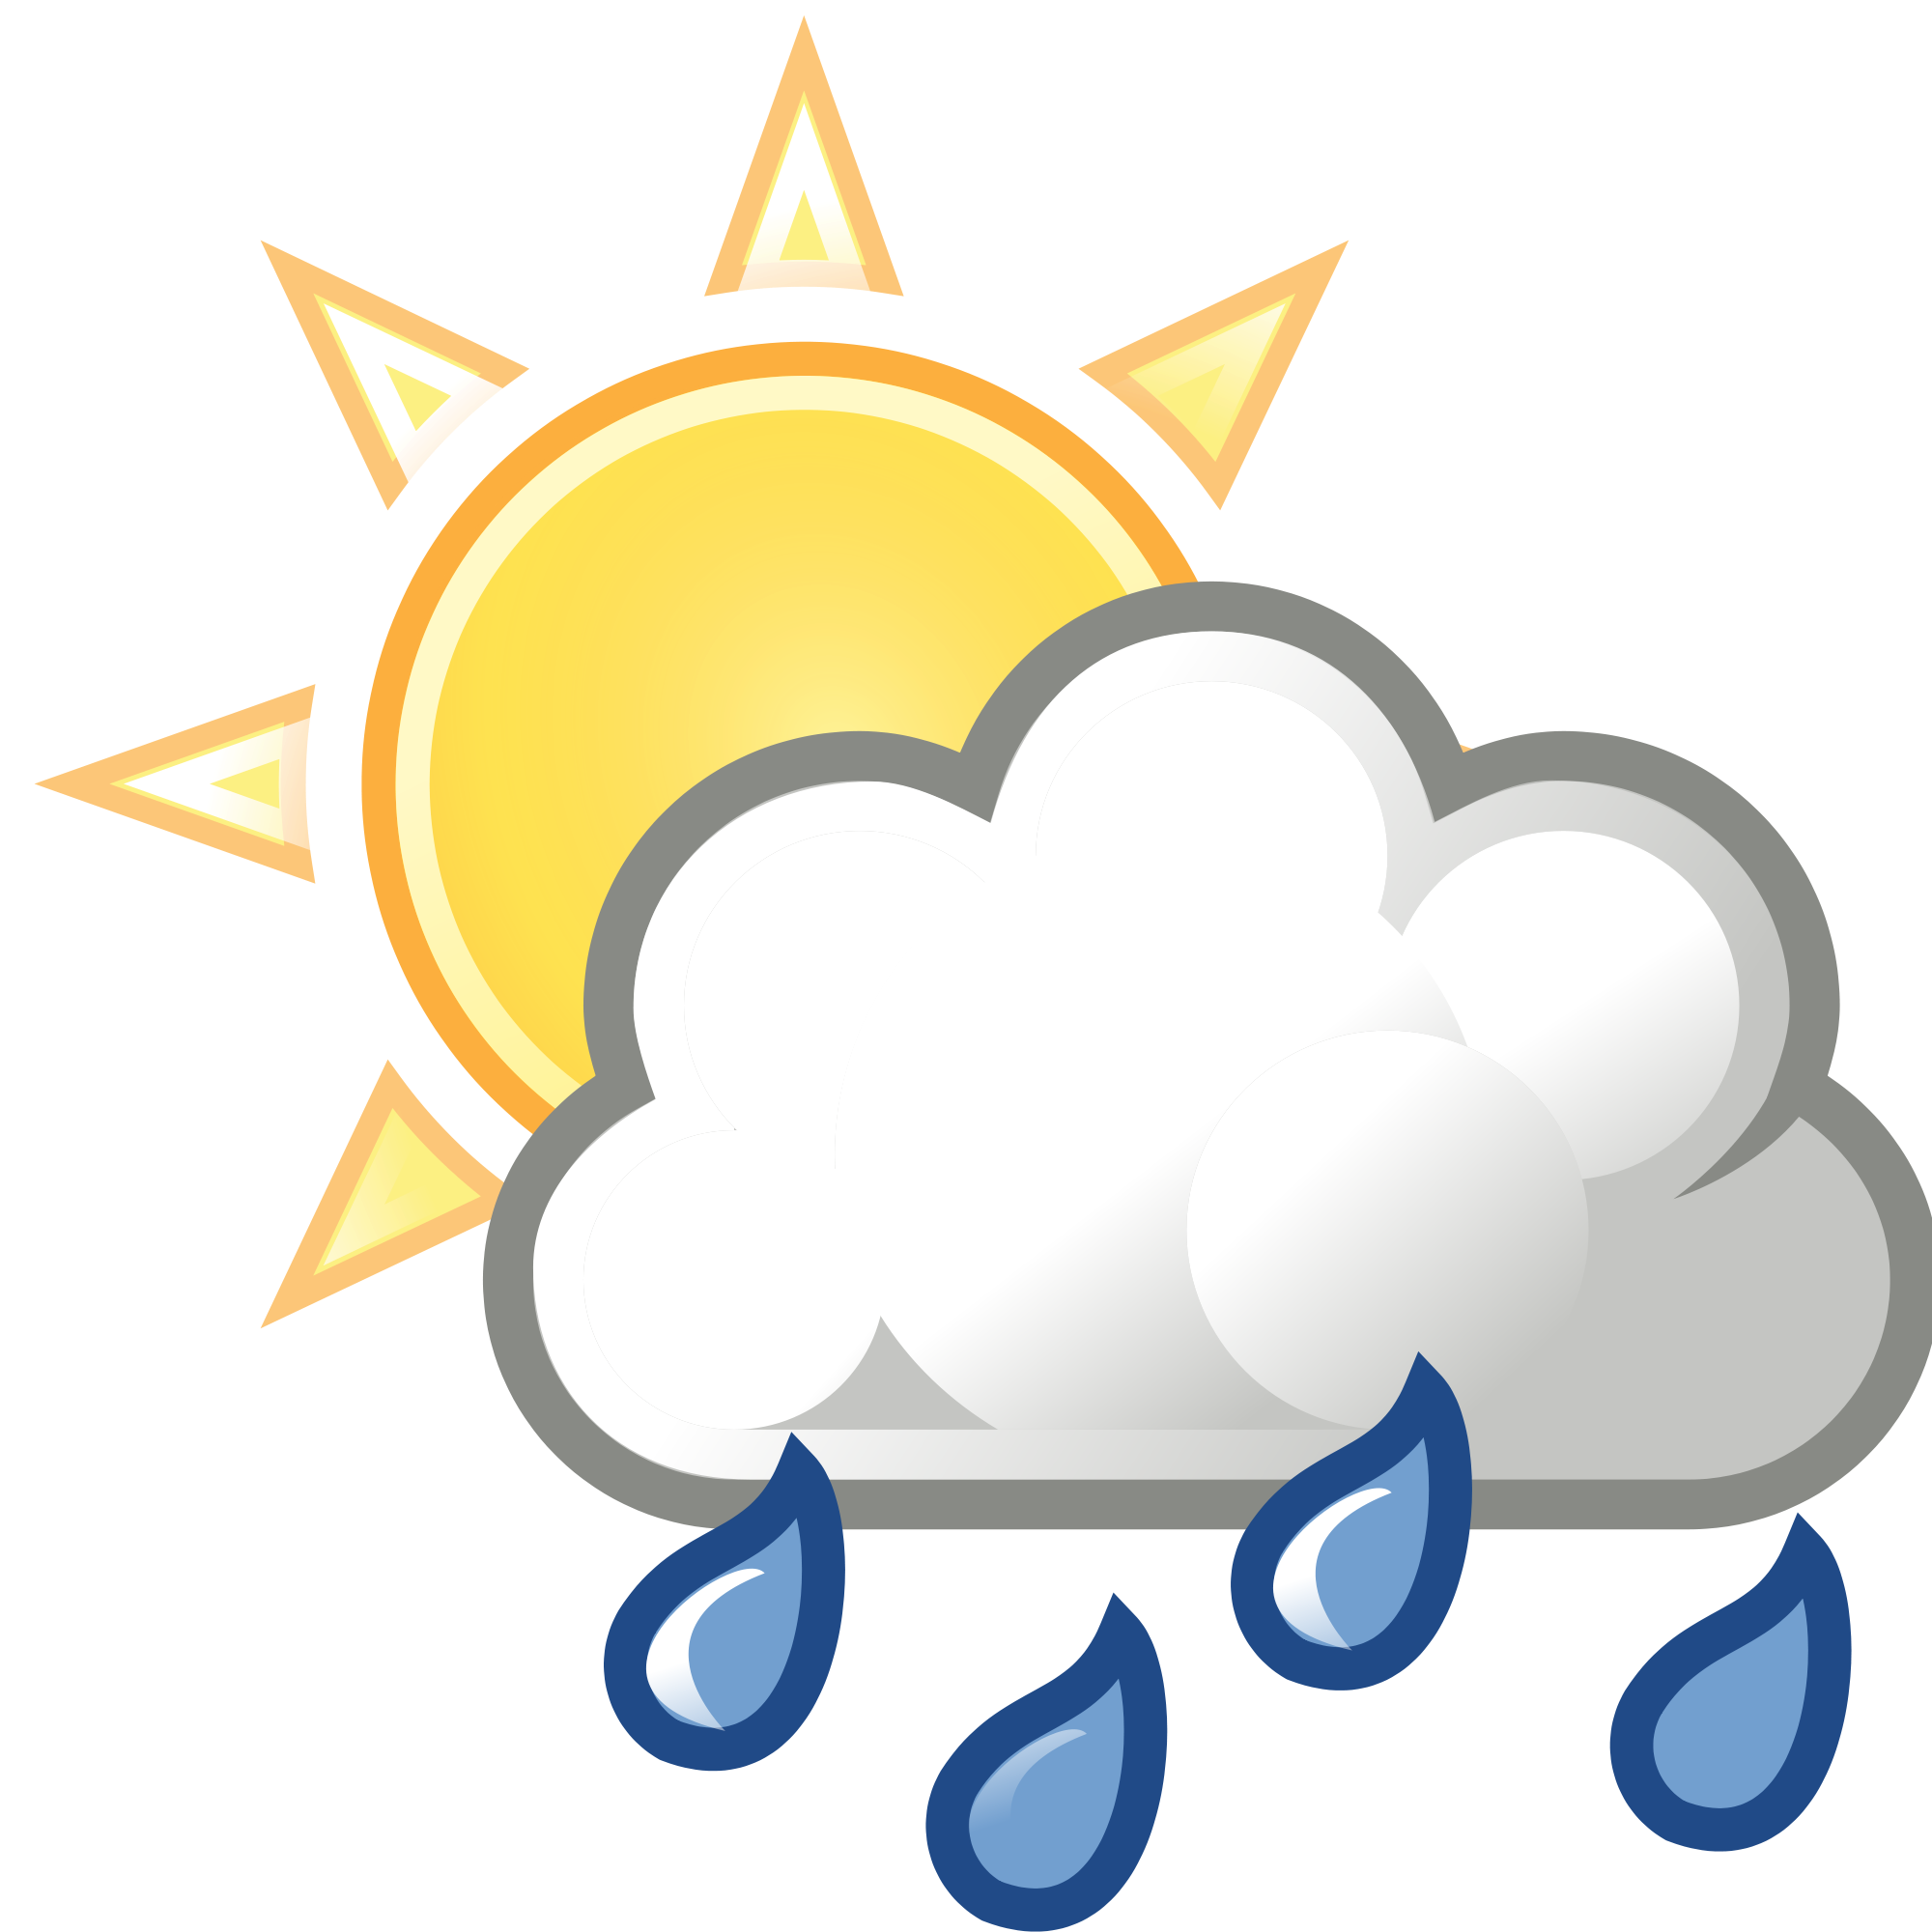 Sun with clouds infront clipart graphic library File:Weather-sun-clouds-rain.svg - Wikimedia Commons graphic library